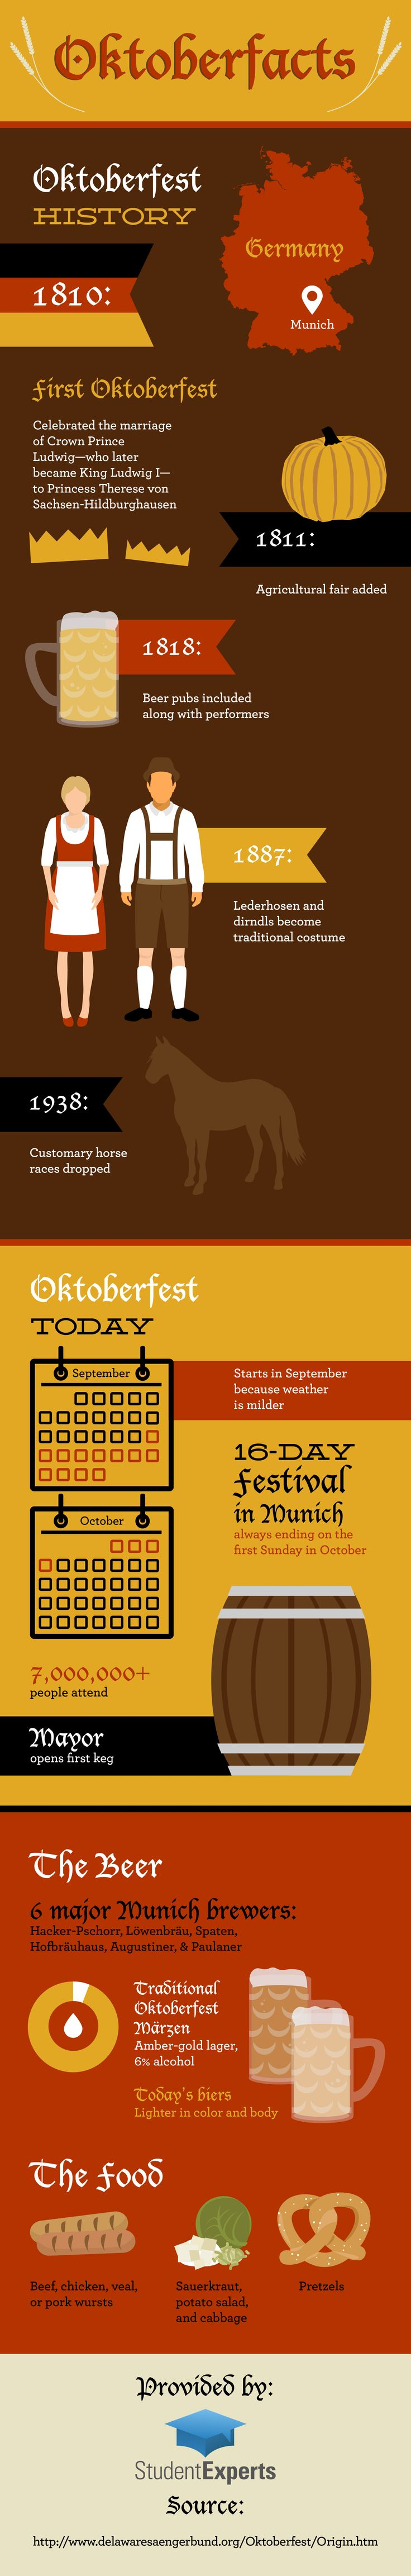 Oktoberfacts! Oktoberfest Infographic